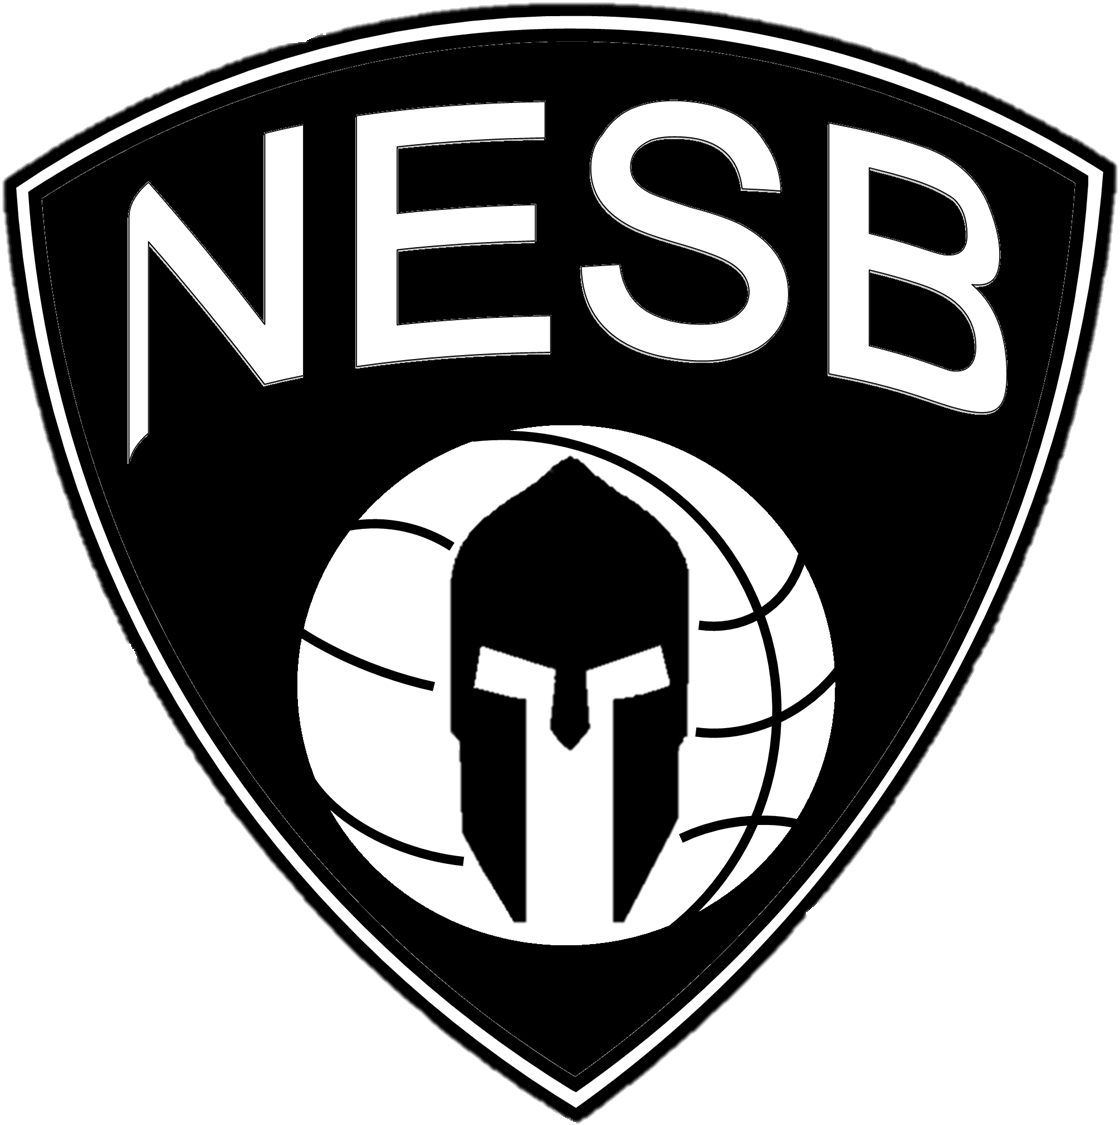 Free basketball clipart blue spartan clipart black and white stock New England Spartan Basketball (NESB) clipart black and white stock